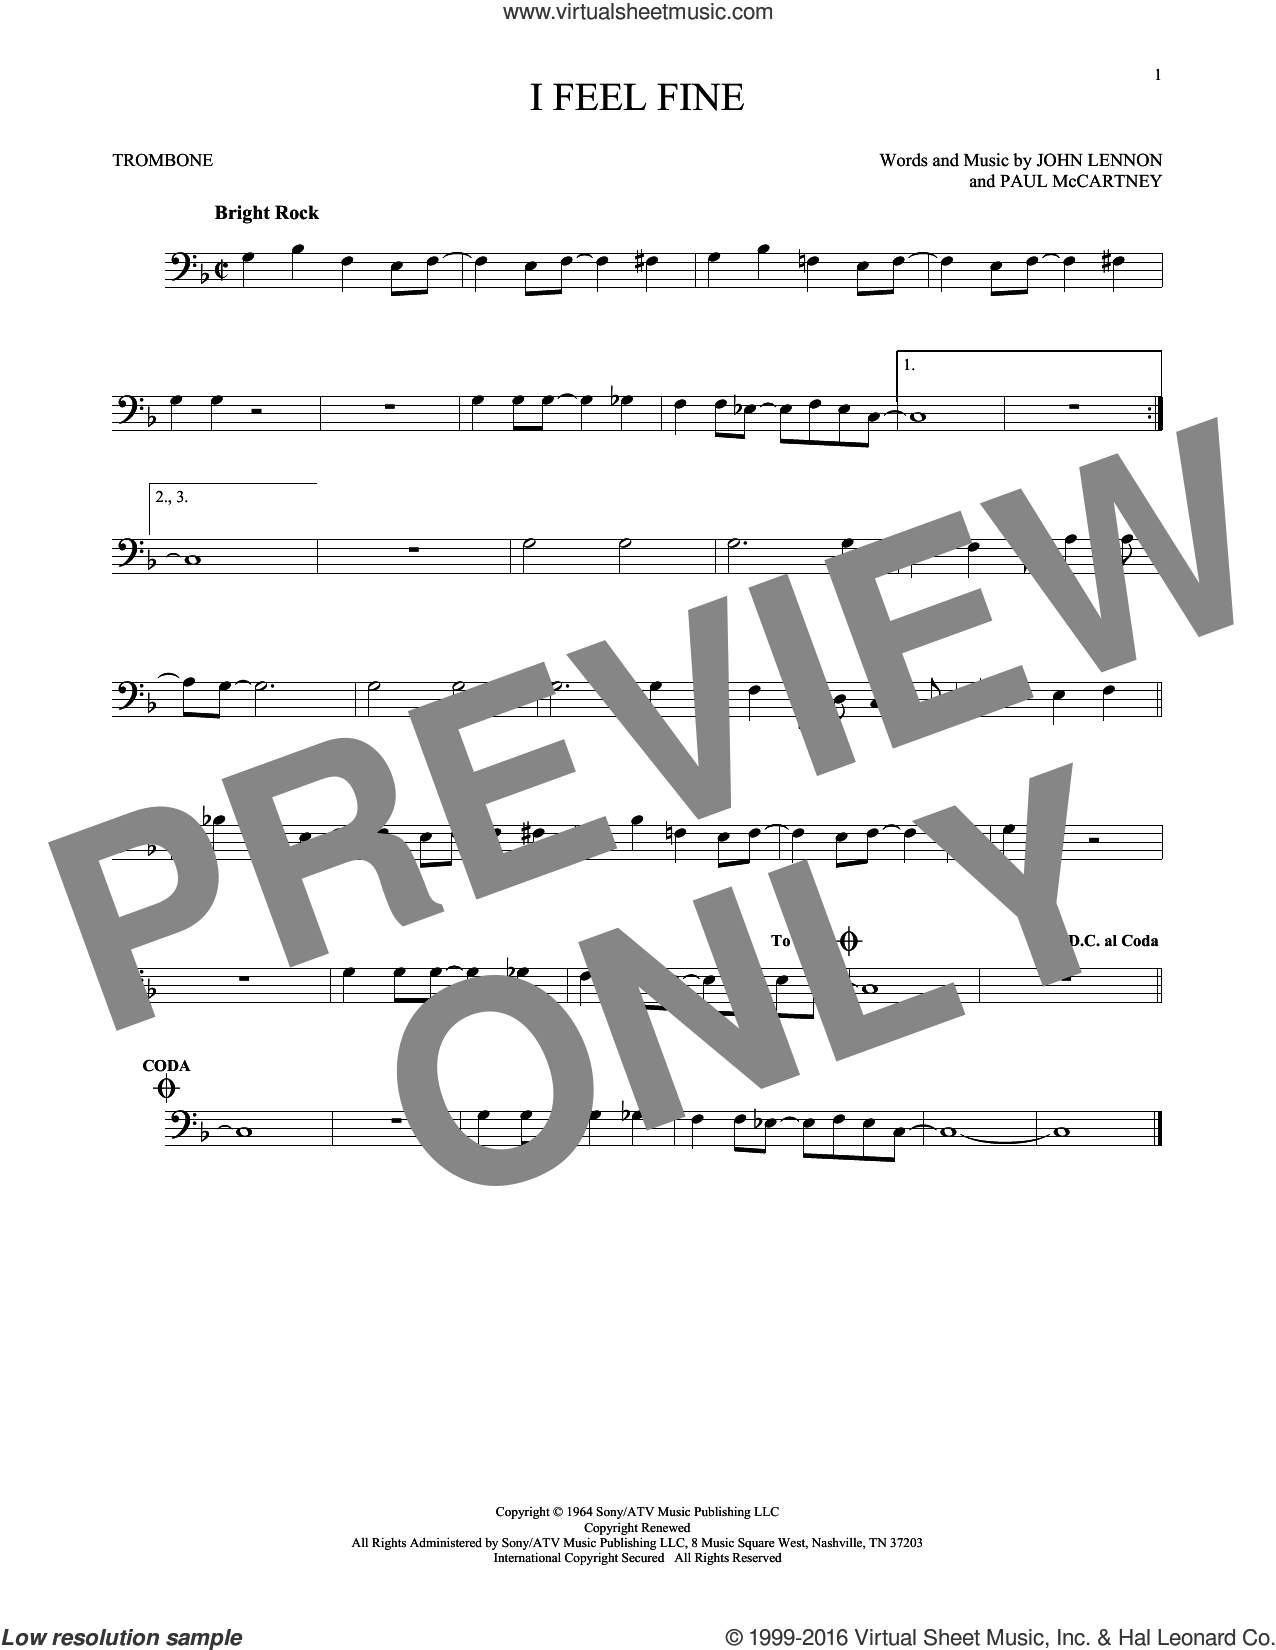 I Feel Fine sheet music for trombone solo by The Beatles, John Lennon and Paul McCartney, intermediate skill level